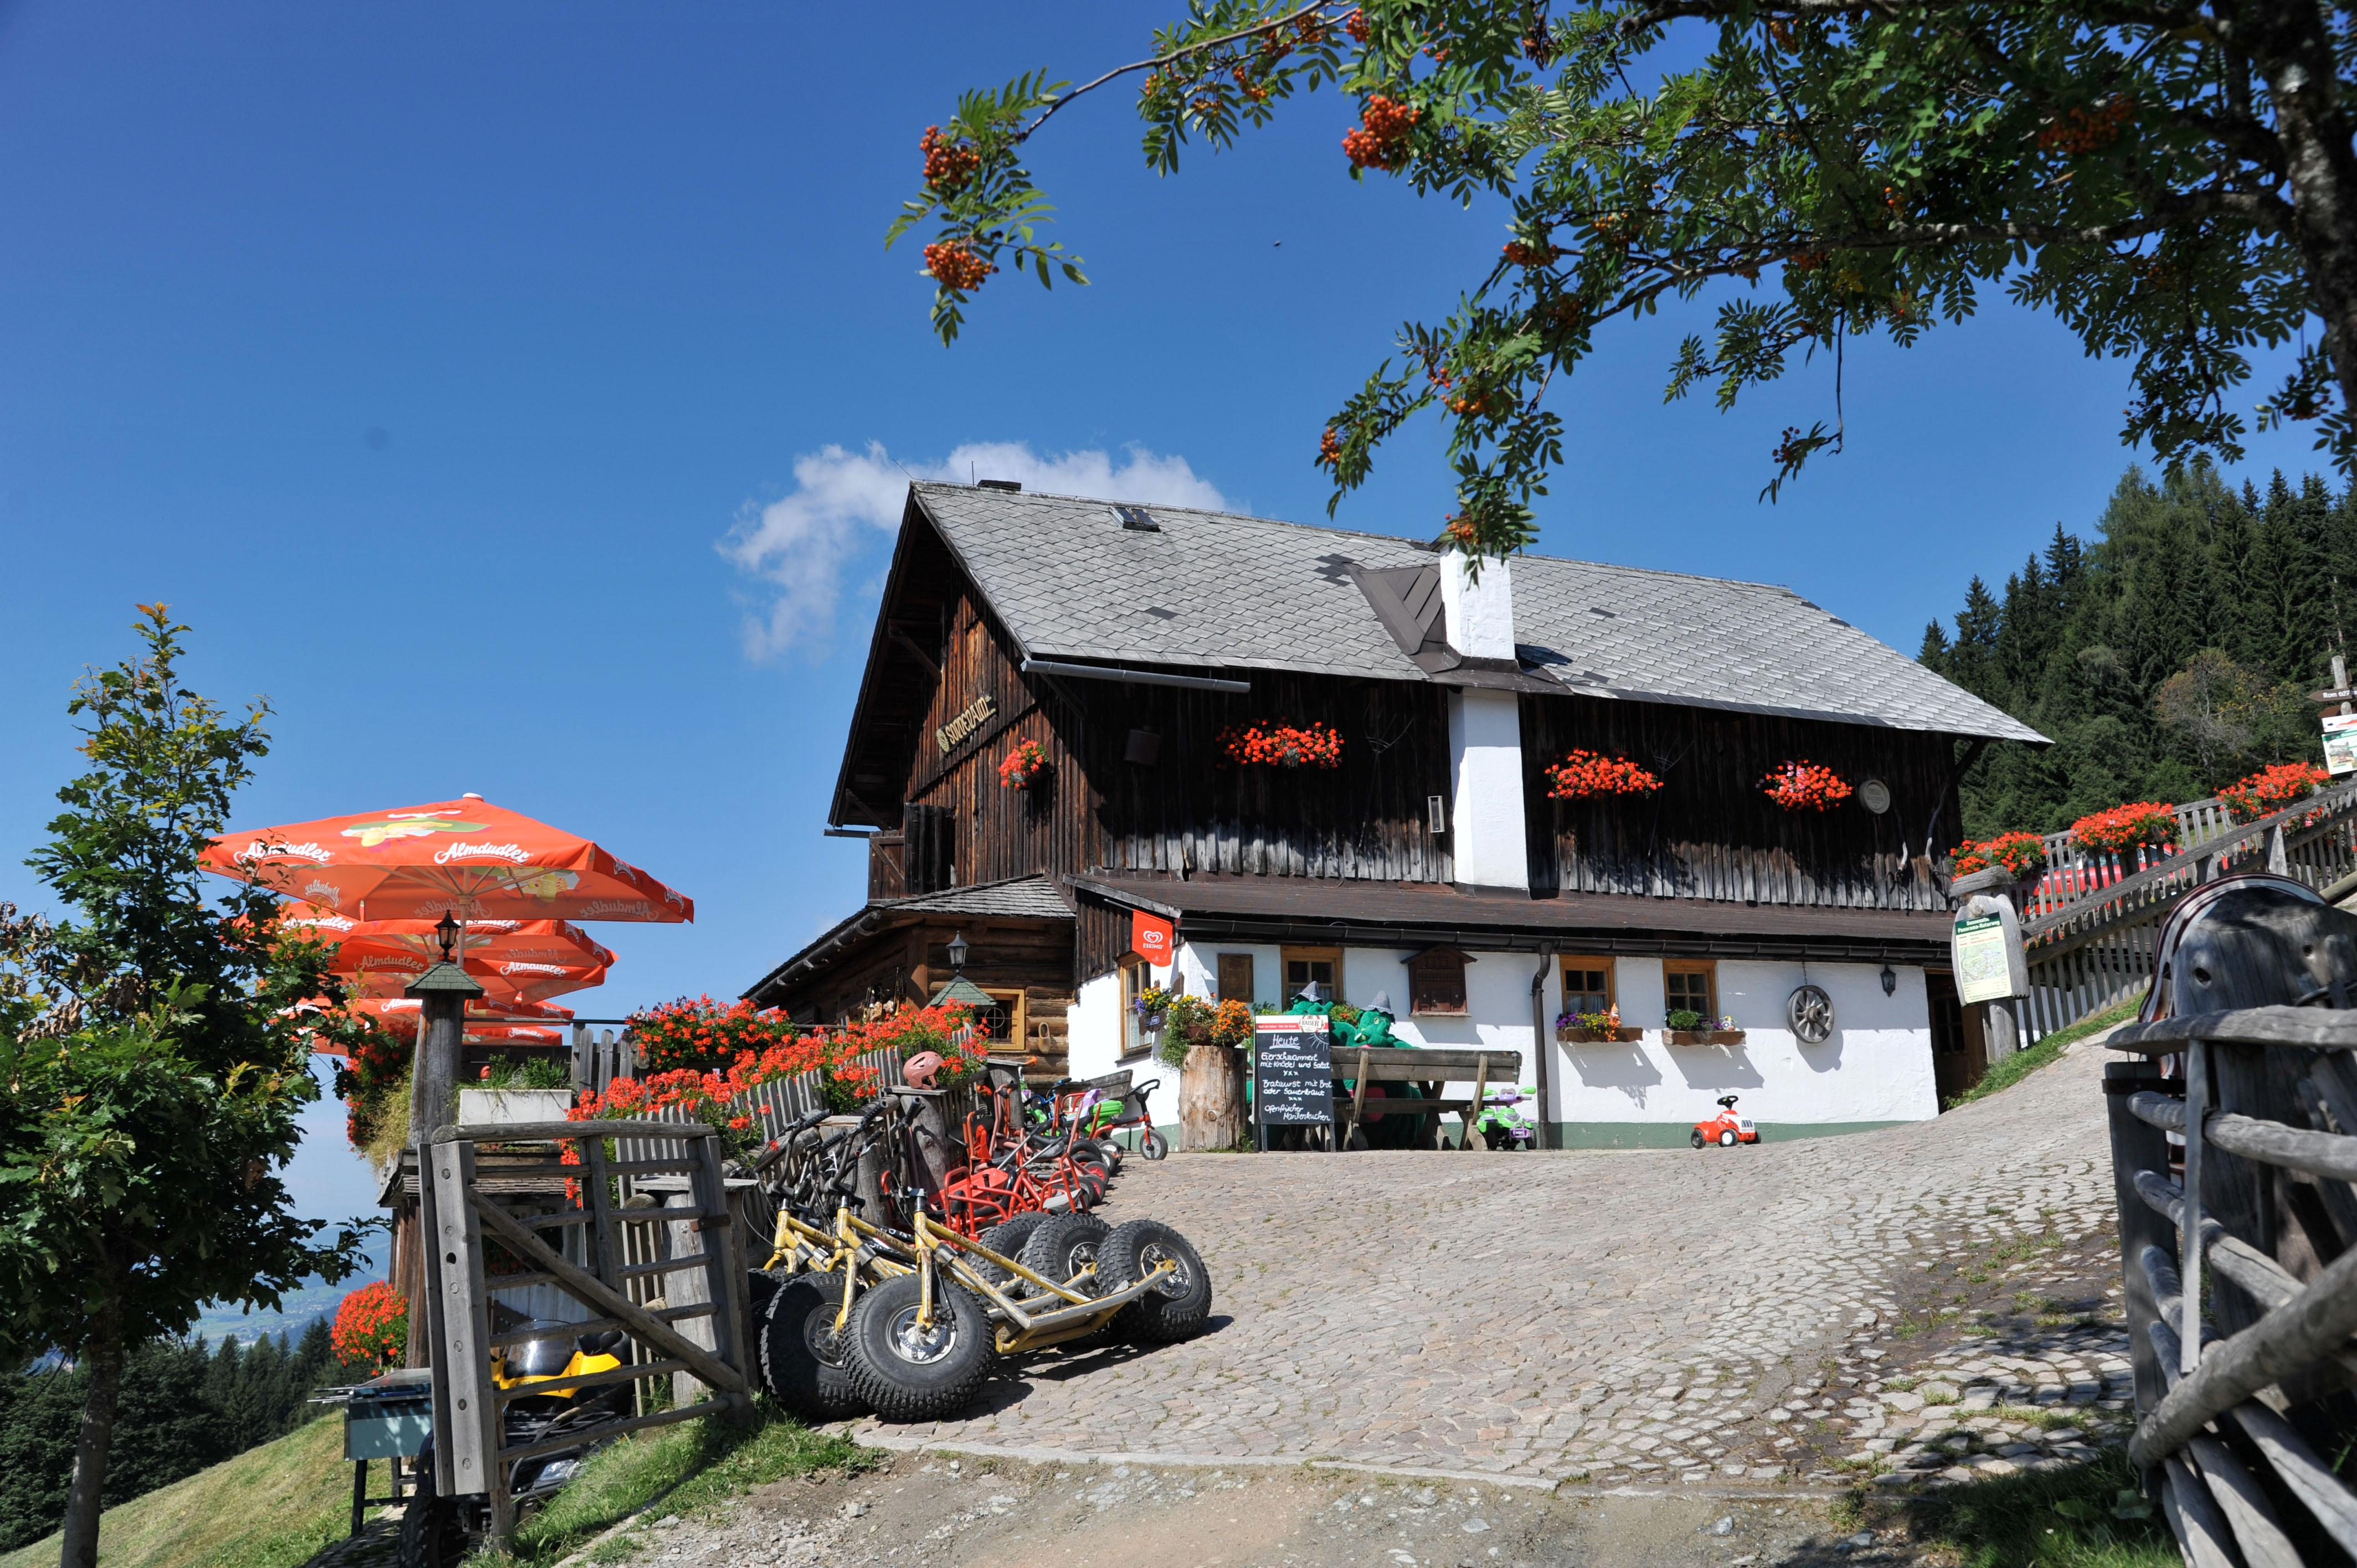 Where to eat Central European food in Ramsau am Dachstein: The Best Restaurants and Bars